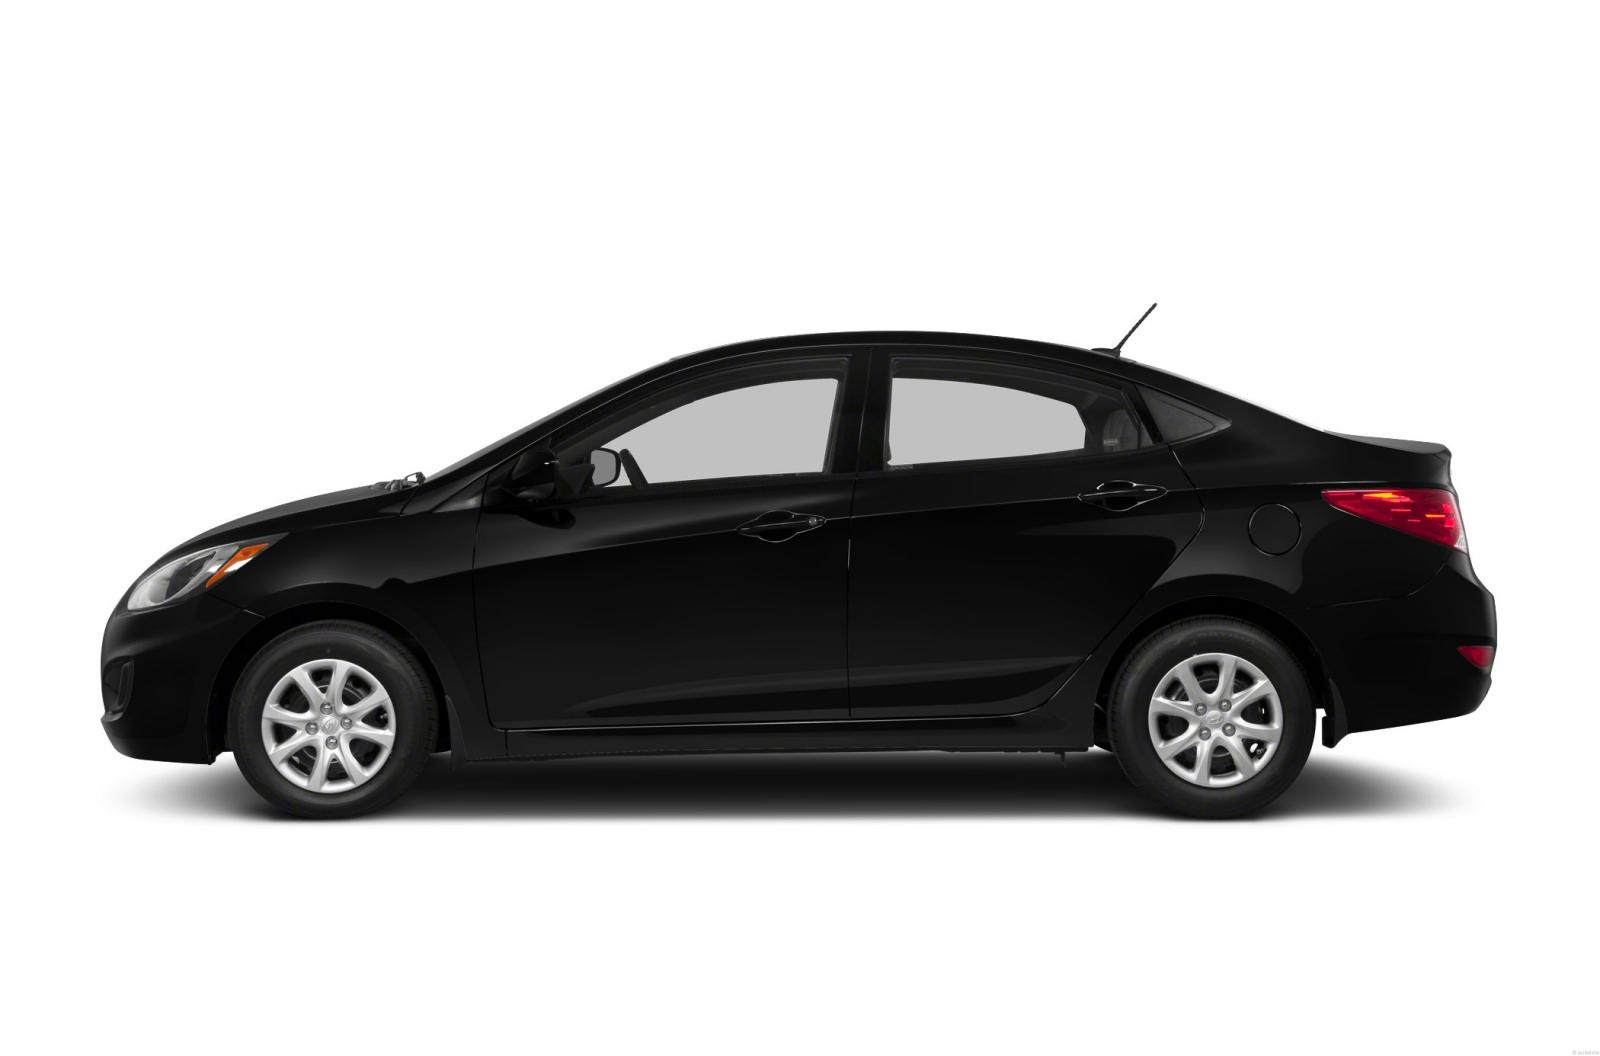 2013 hyundai accent information and photos zombiedrive. Black Bedroom Furniture Sets. Home Design Ideas